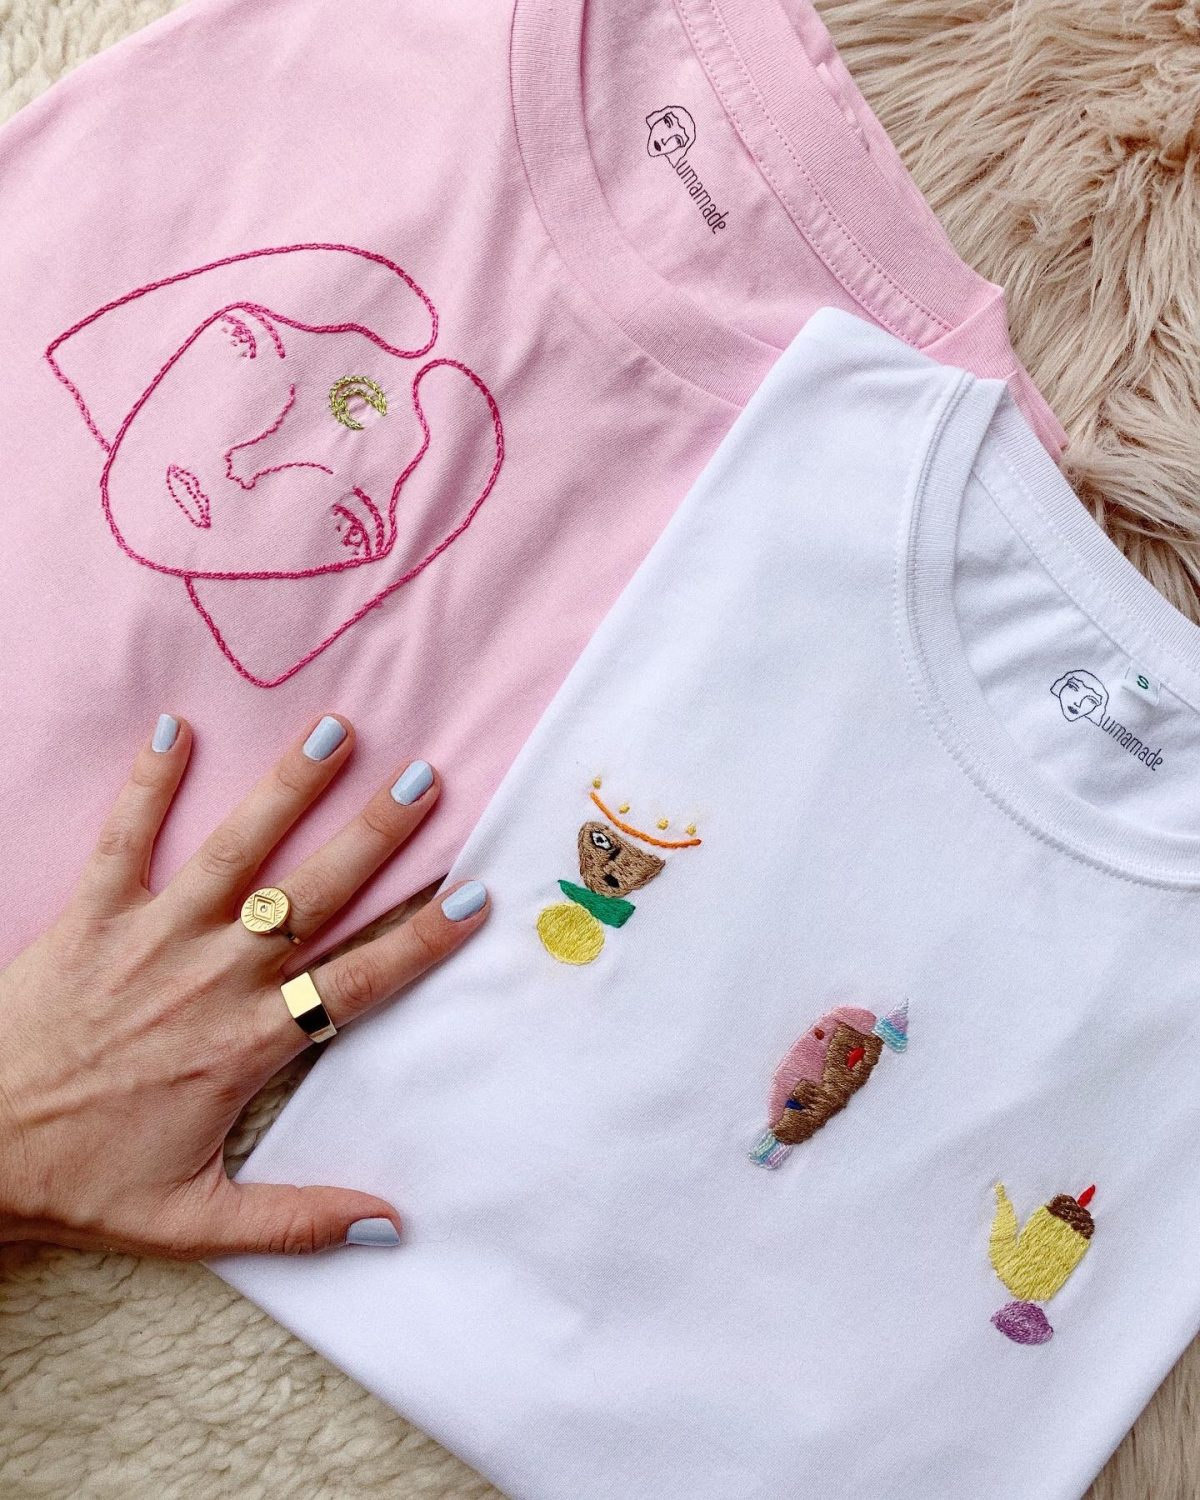 hand embroidery workshop tshirts embroidered